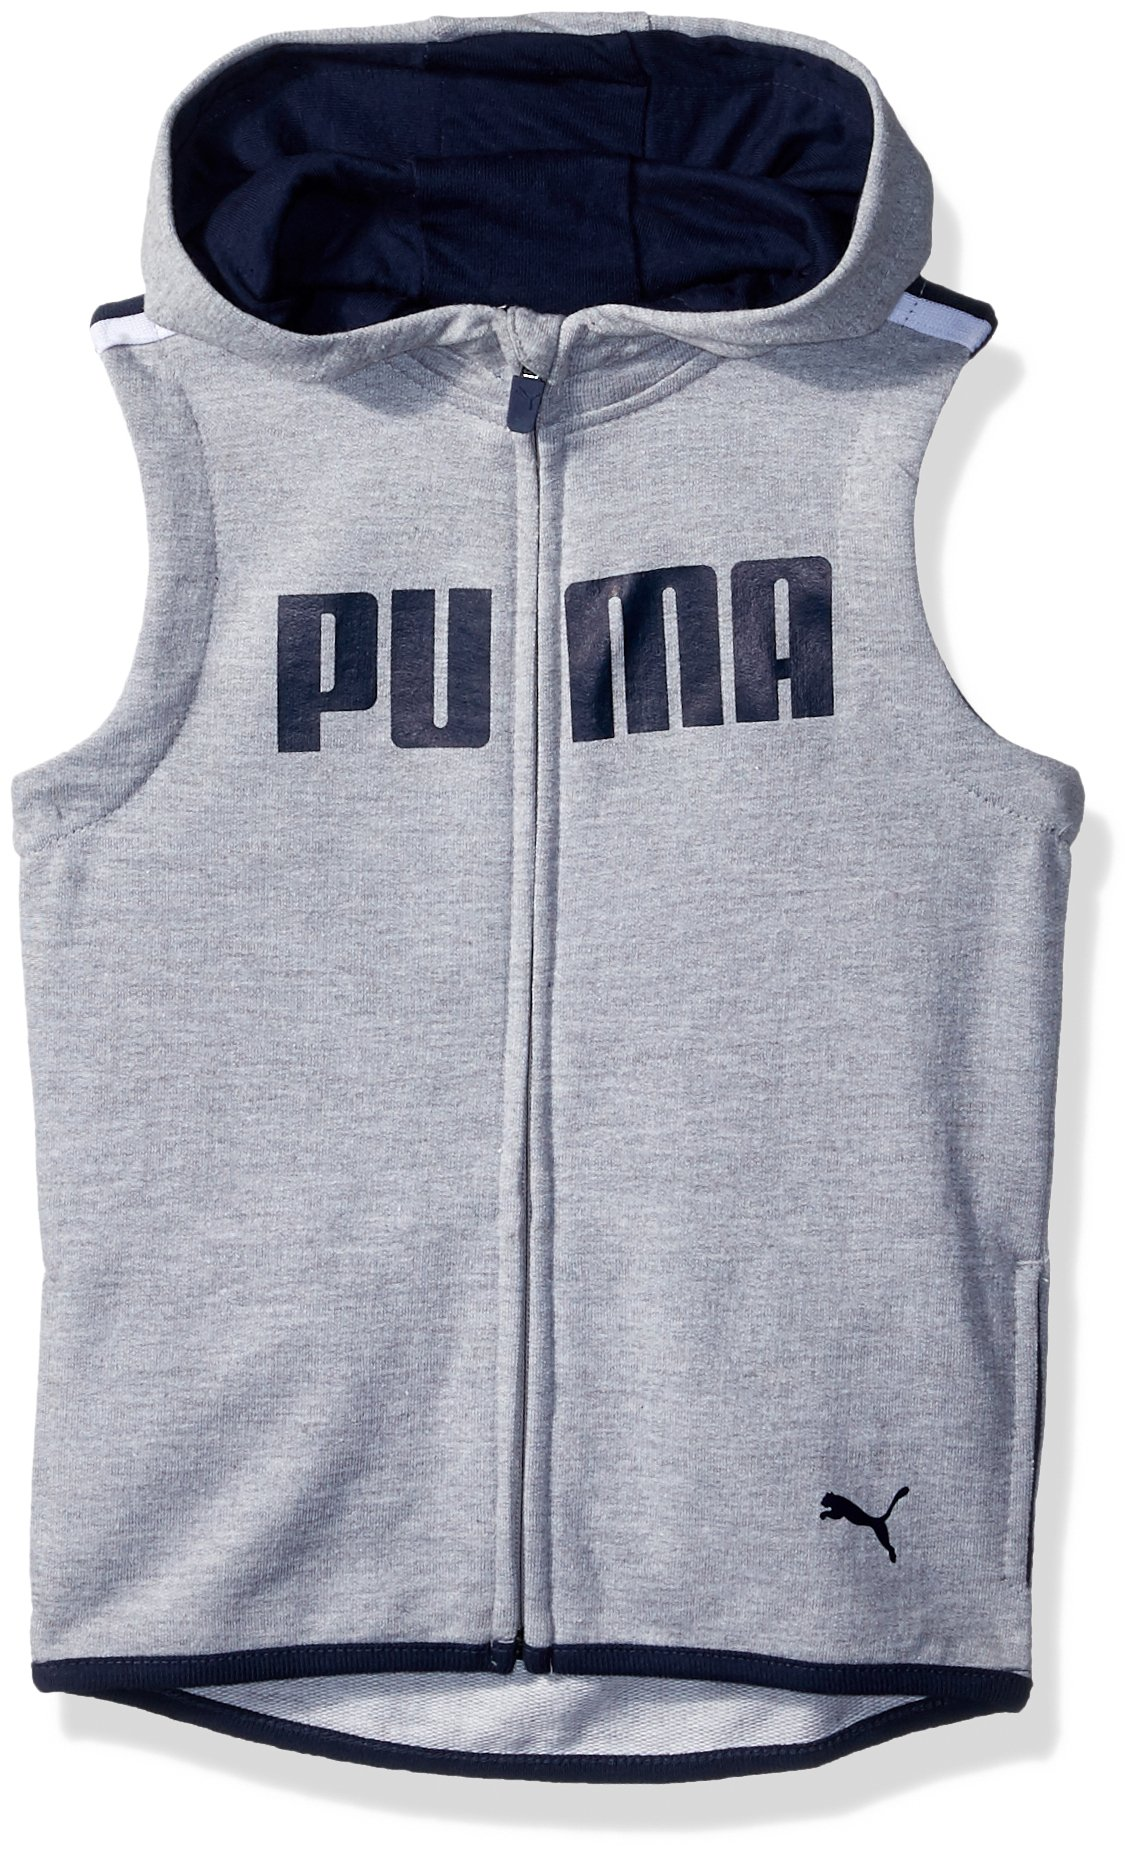 PUMA Toddler Boys' Dimicco Full Zip Hooded Vest, Light Heather Grey, 2T by PUMA (Image #1)